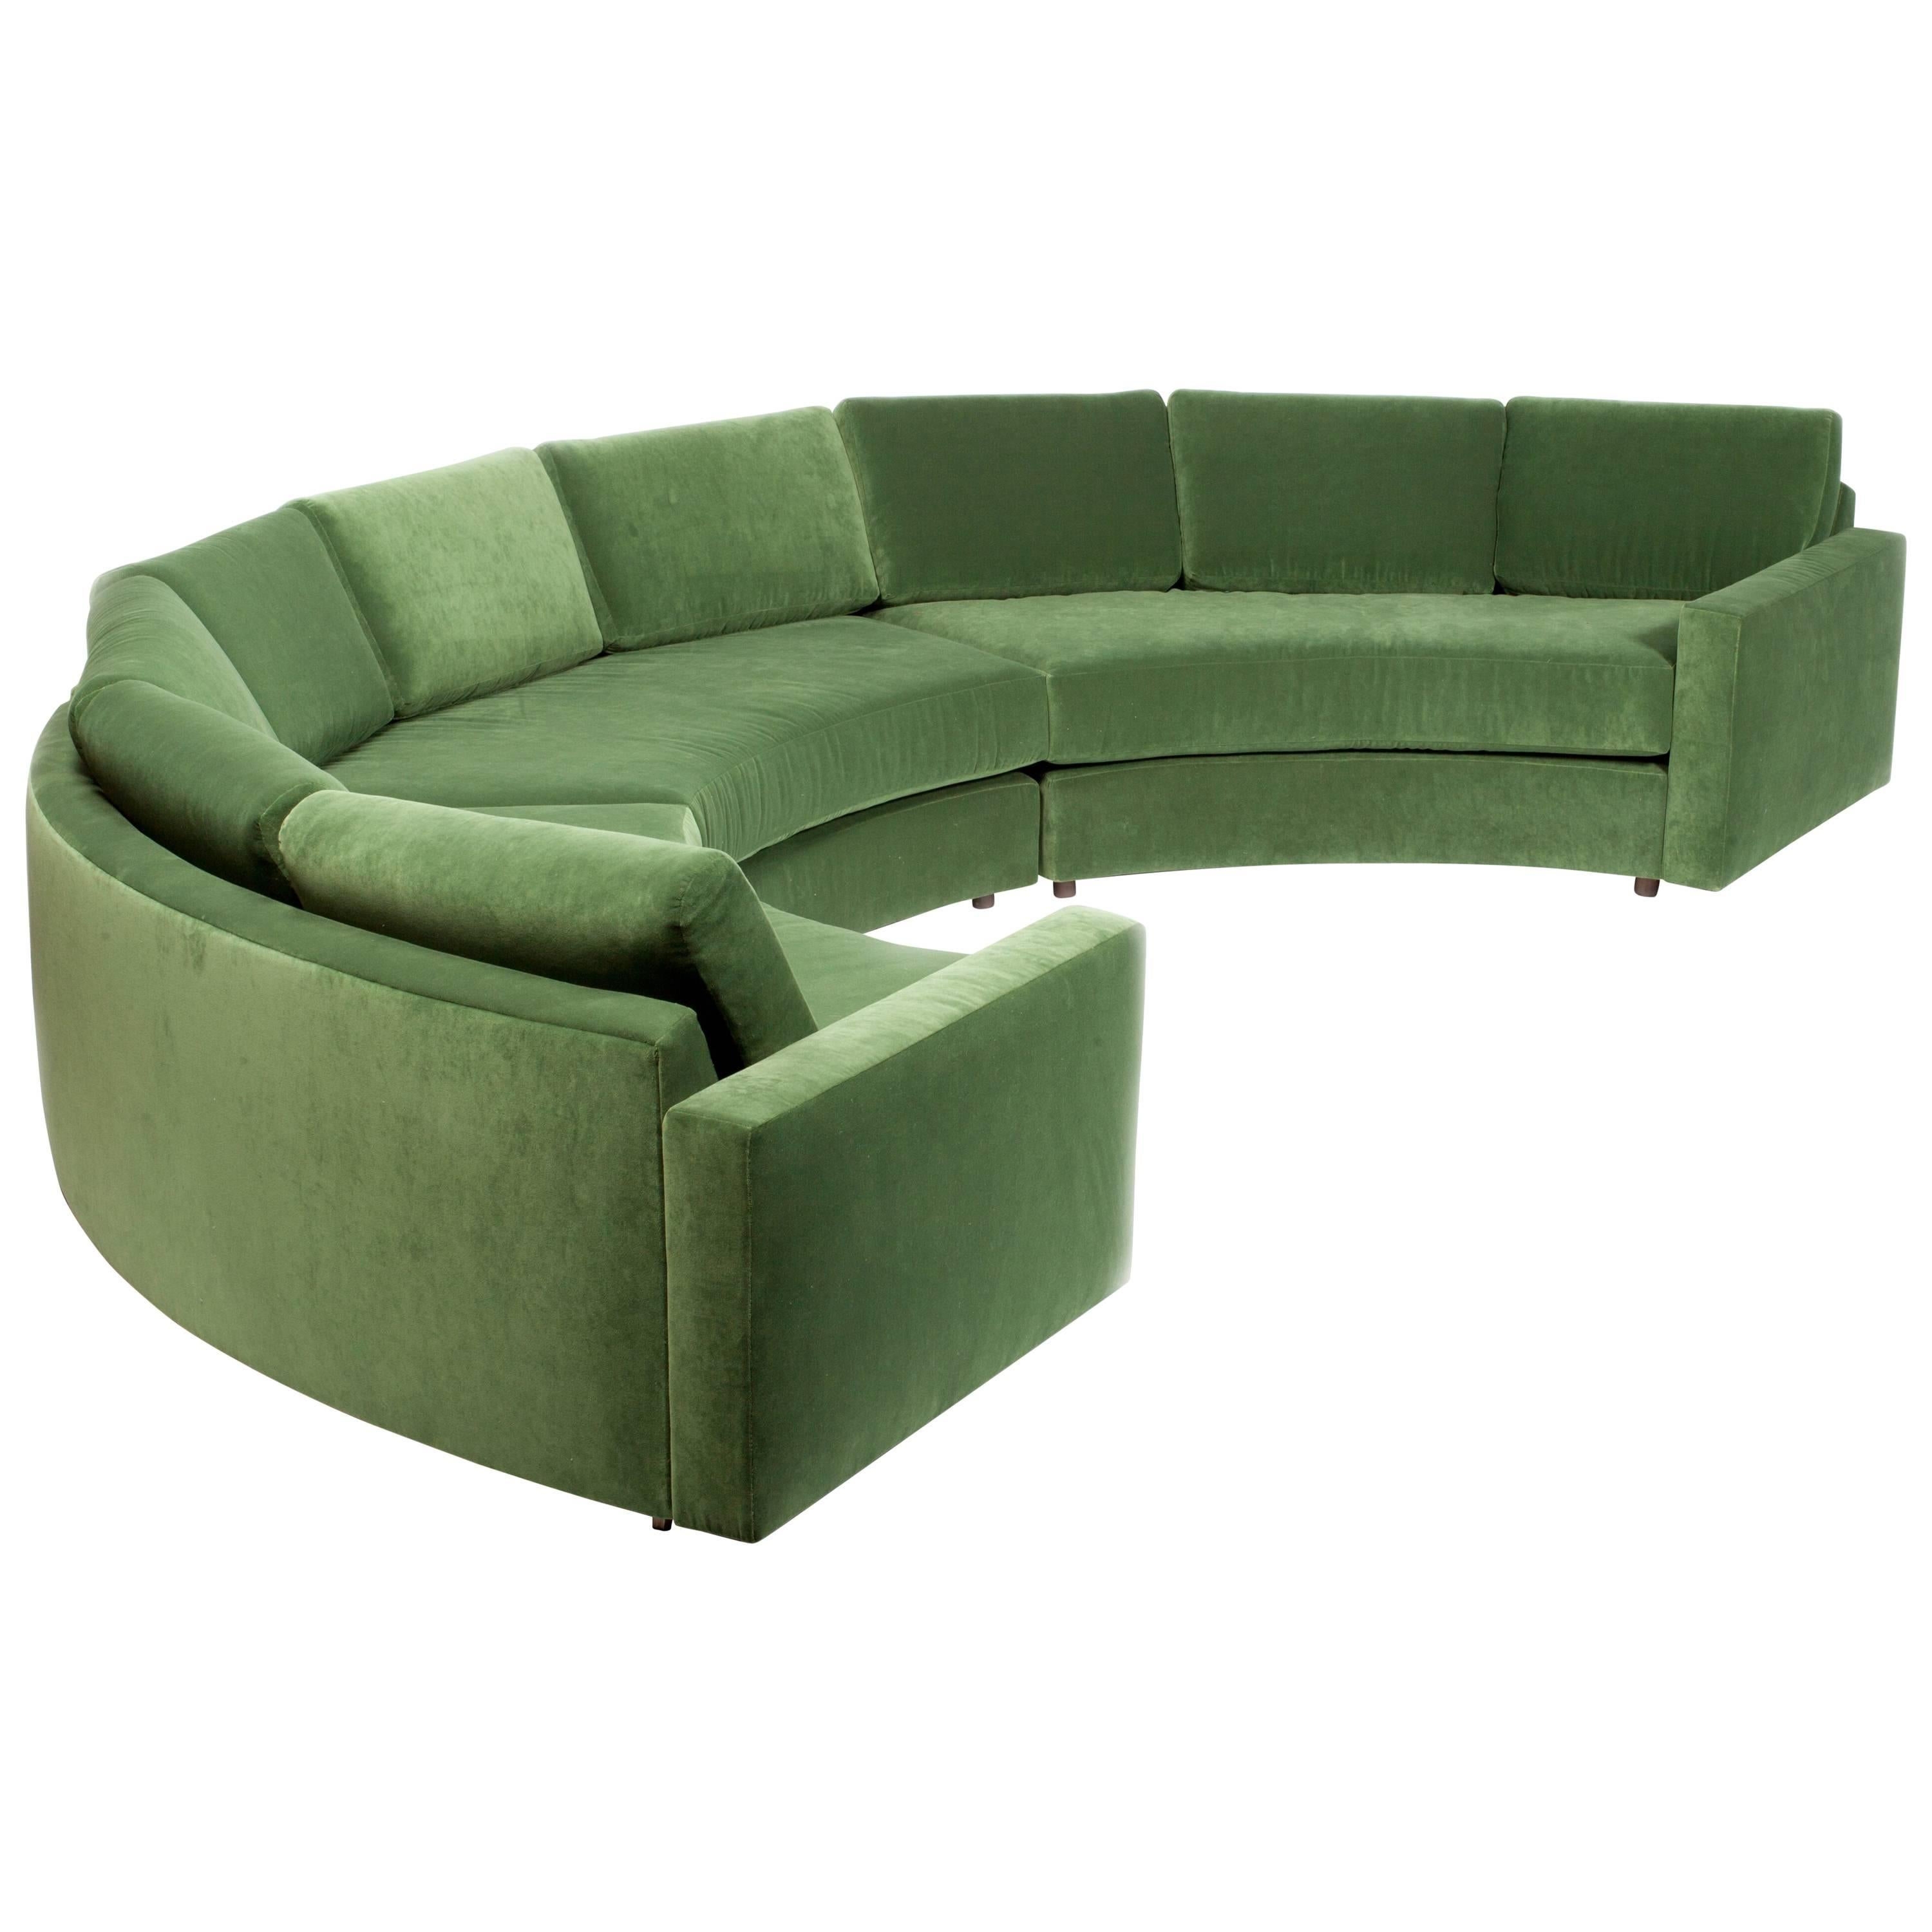 Large Semi Circle Sectional Newly Upholstered in